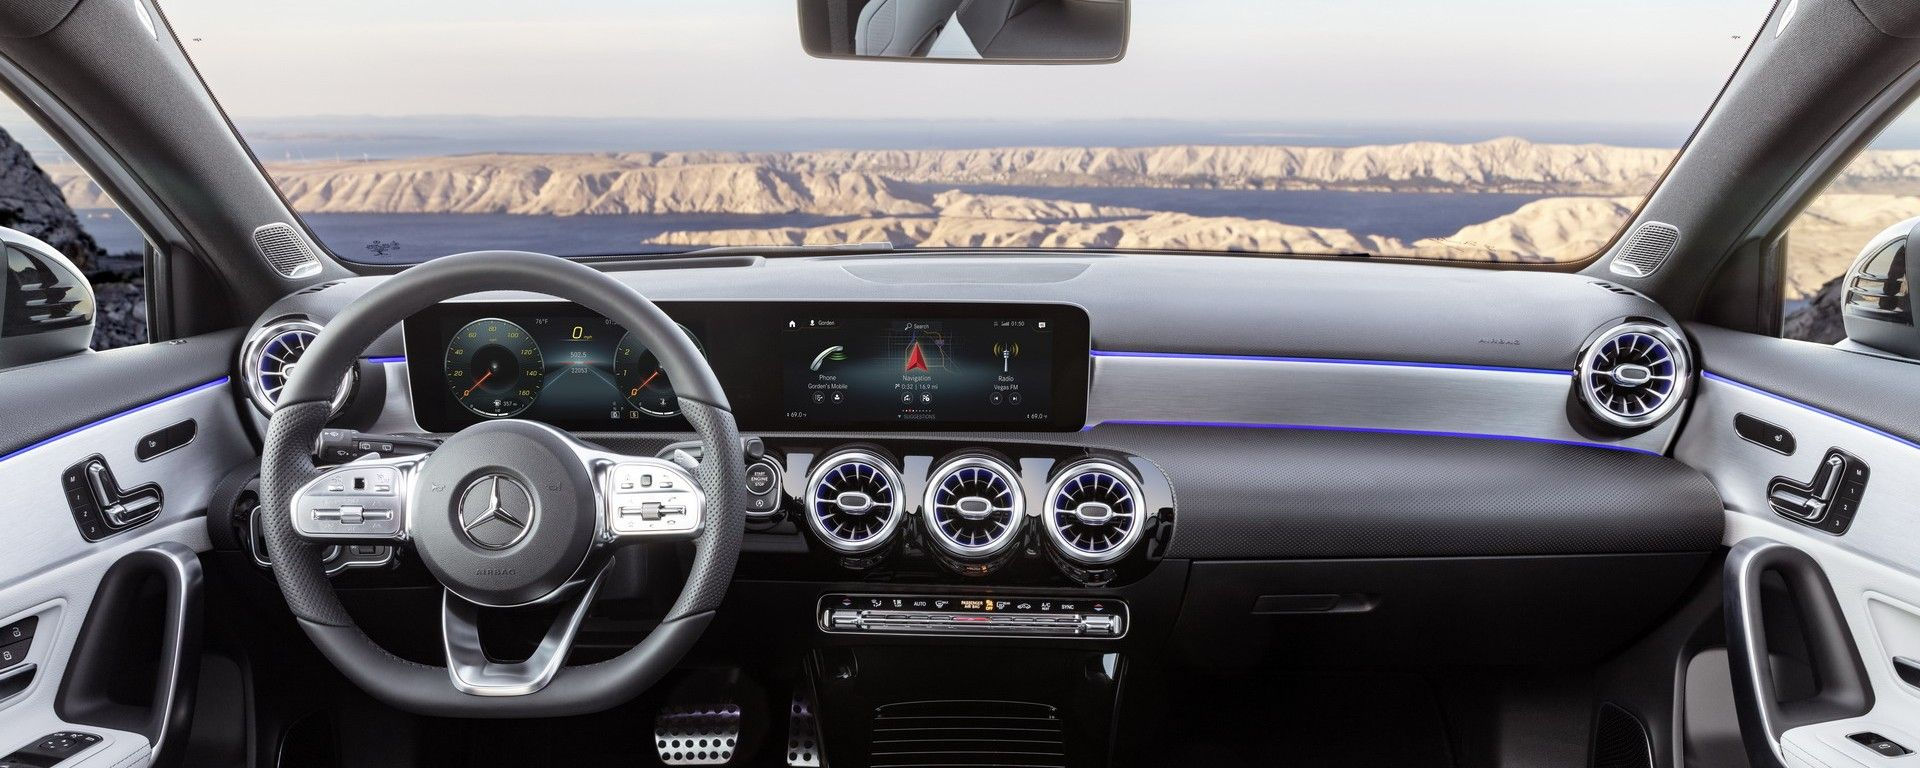 Mercedes Classe A 2018 Video Tutorial Dell Infotainment